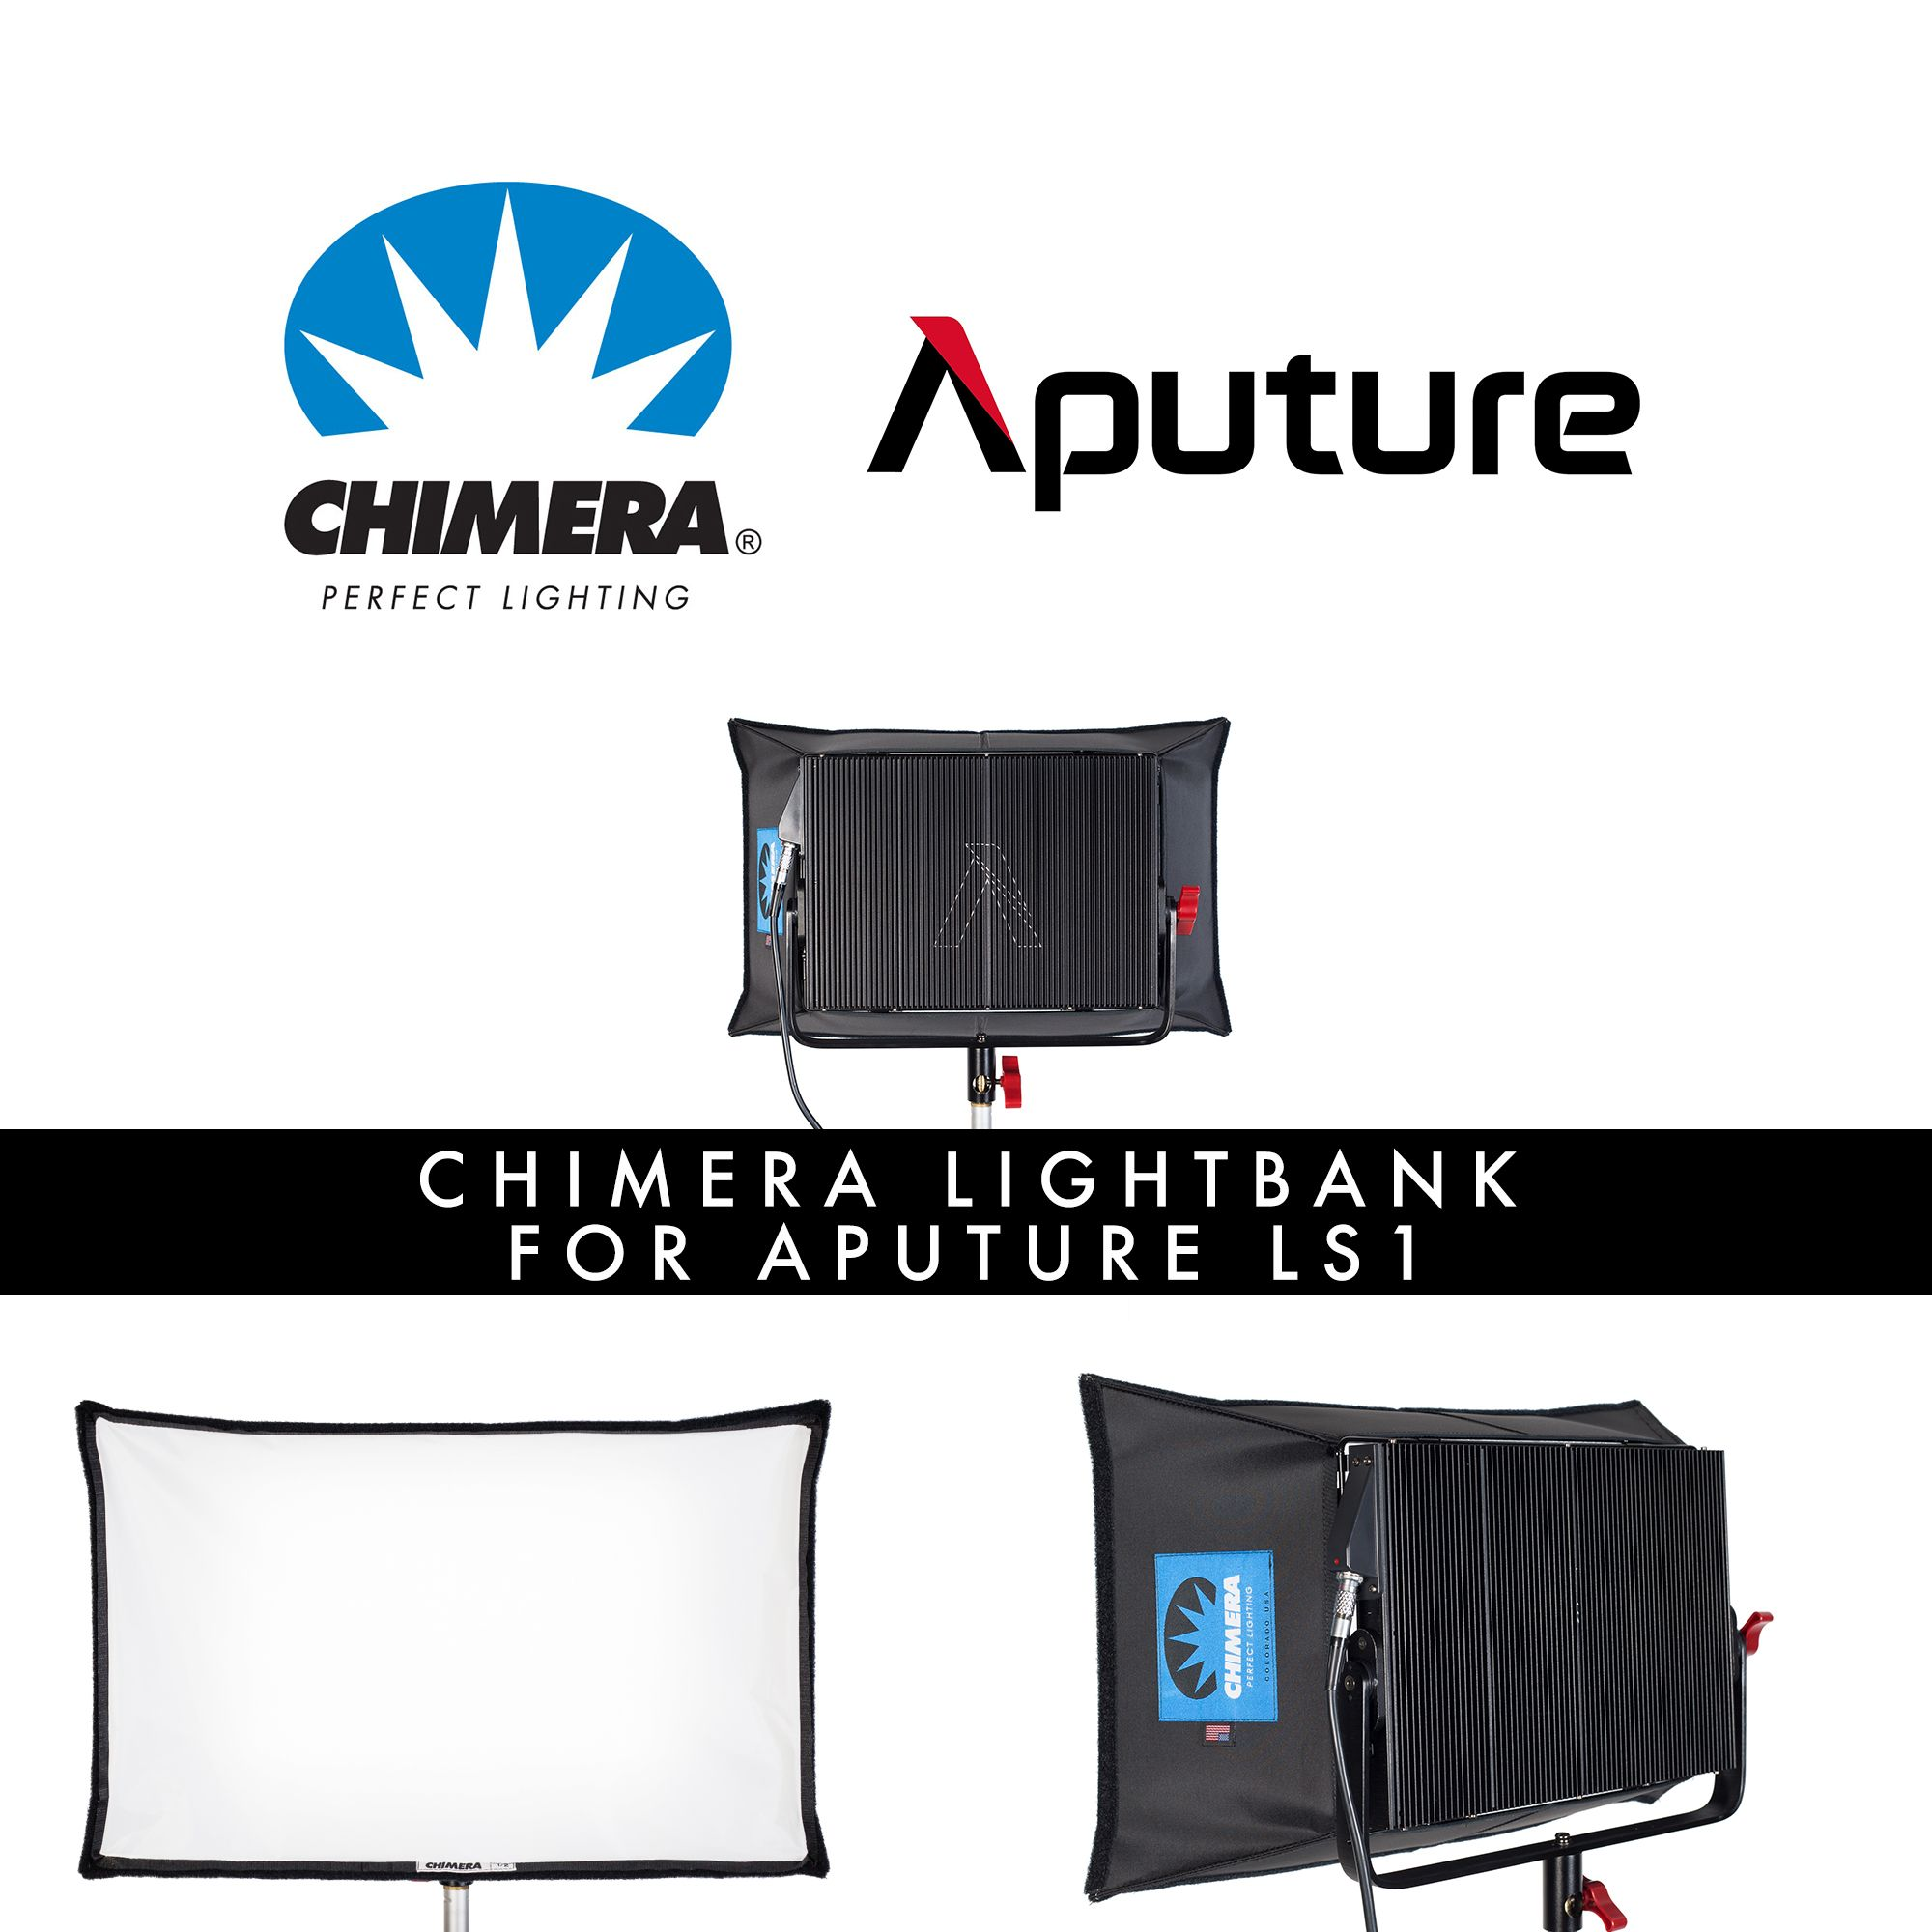 Nab Las Vegas Nv April 06 2018 Chimera Lighting Is Pleased To